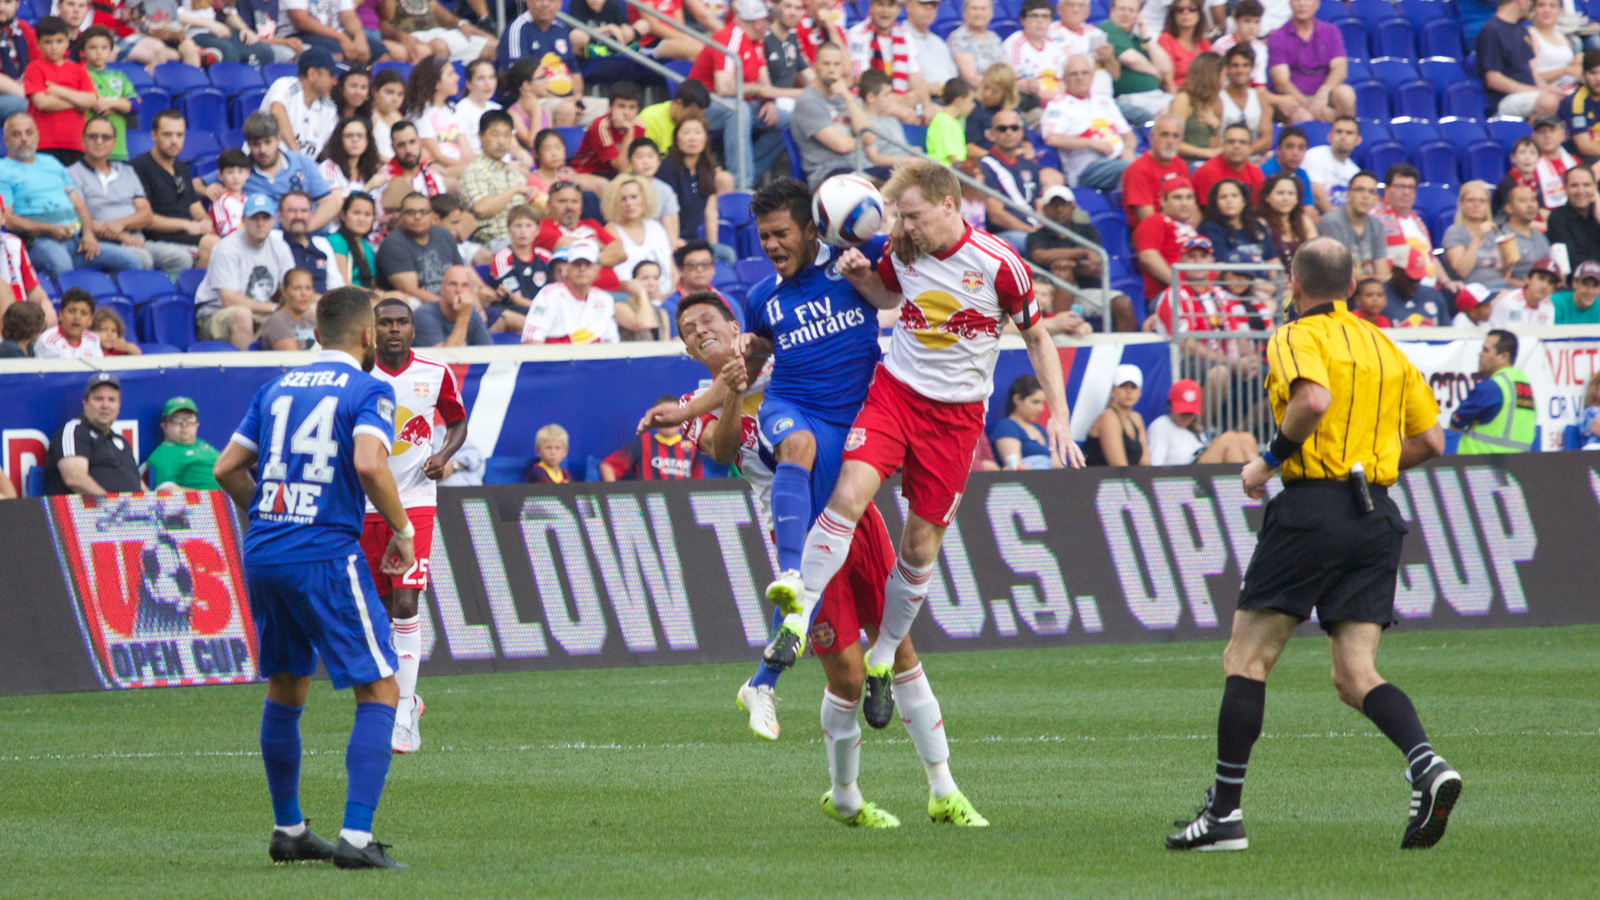 New York Red Bulls captain Dax McCarty (right) and Cosmos midfielder Andrés Alexander Flores Mejía (center) meet each other at the ball mid-flight in the first half of their U.S. Open Cup fifth-round match.